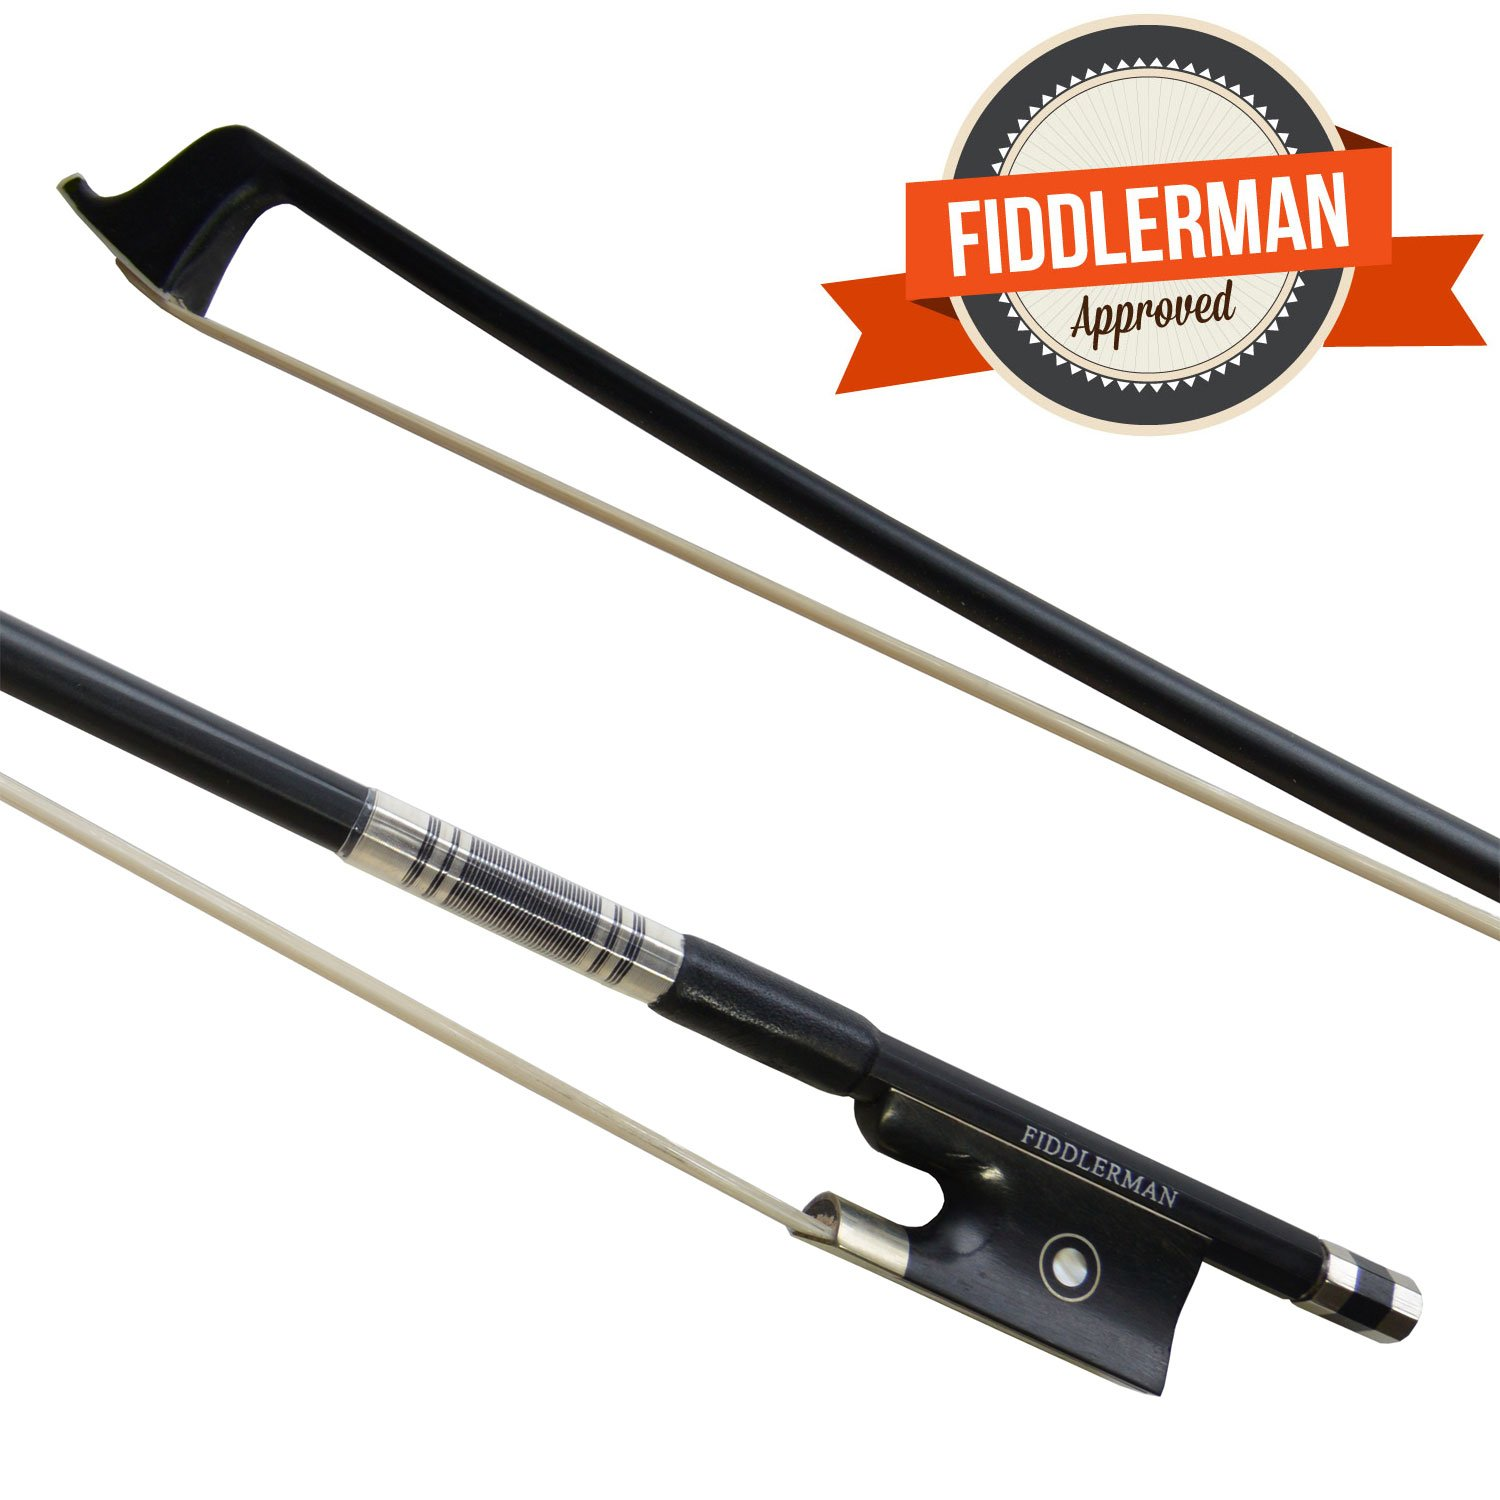 Fiddlerman Carbon Fiber Violin Bow 4/4 Fid-8826